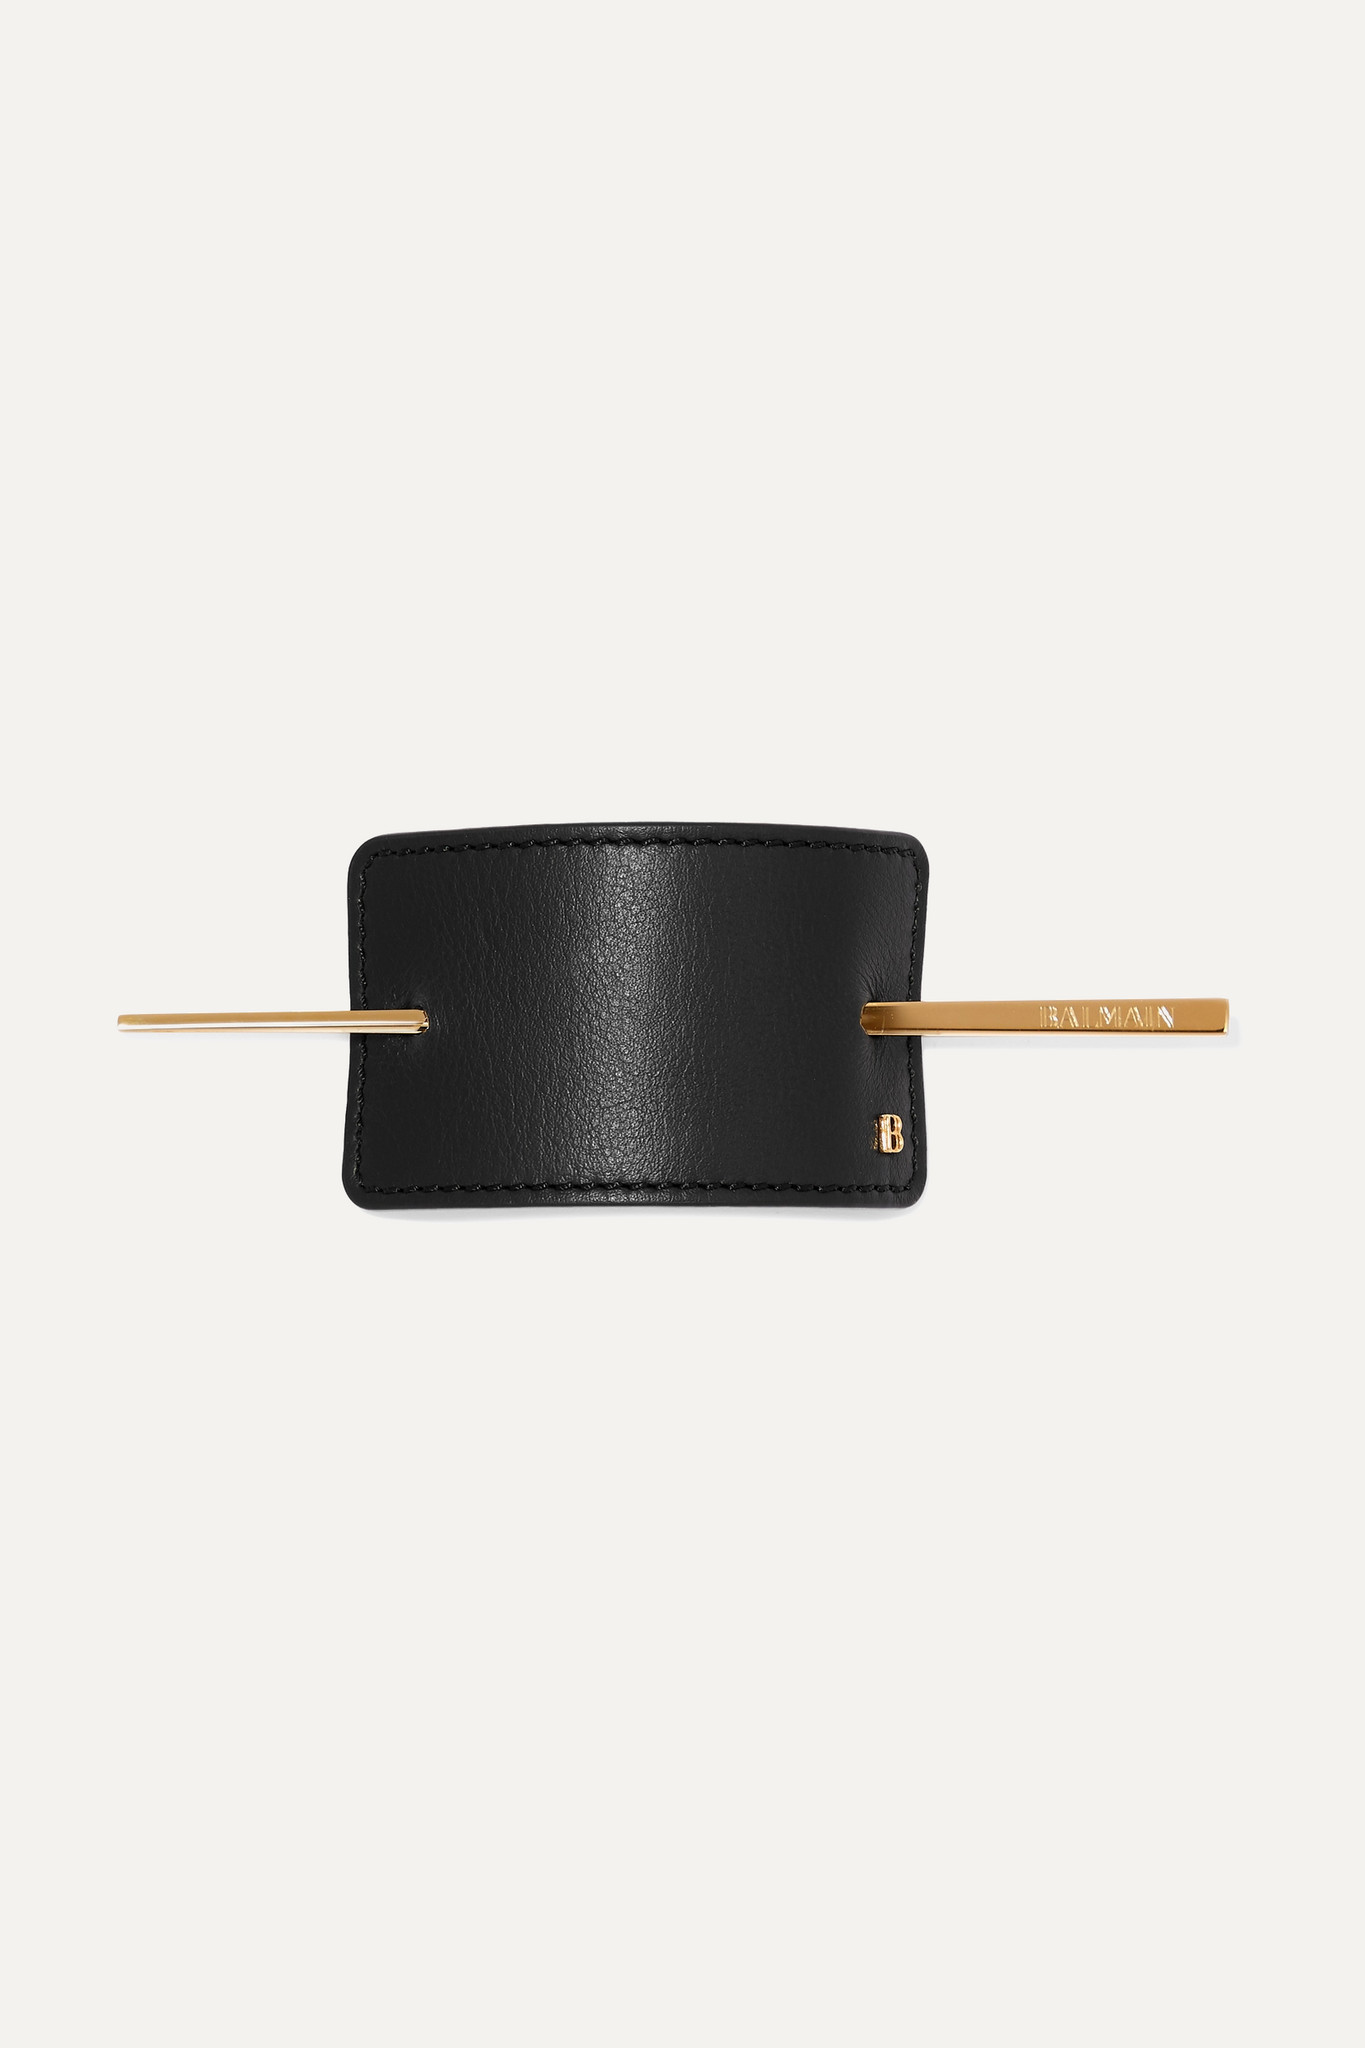 BALMAIN PARIS HAIR COUTURE - Gold-tone And Leather Hairclip - Black - one size